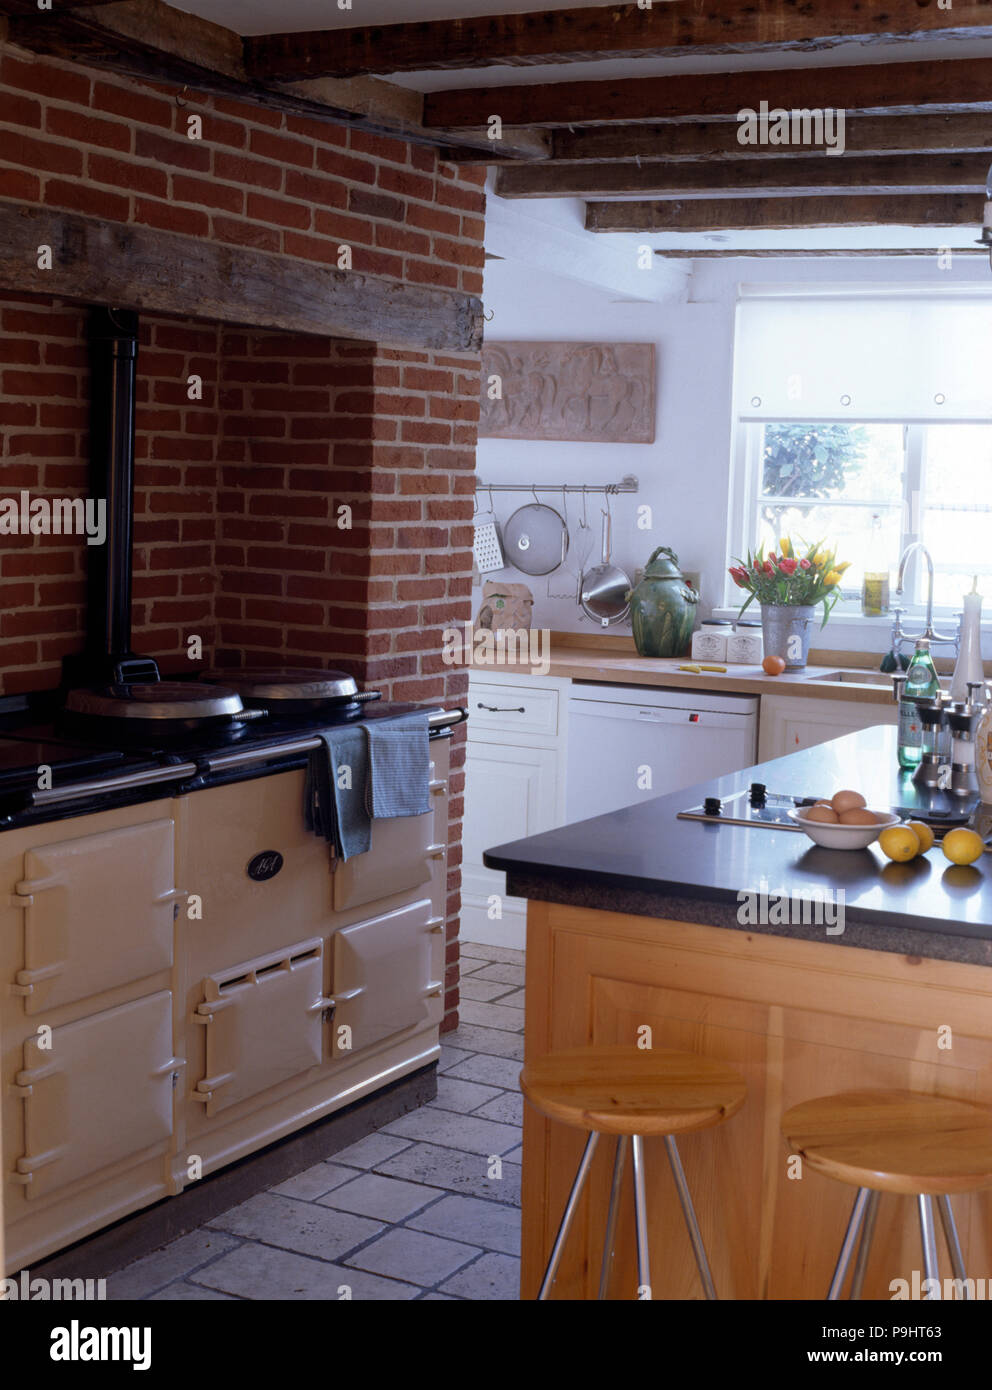 Cream aga in a country kitchen with an exposed brick wall and rustic wooden ceiling beams